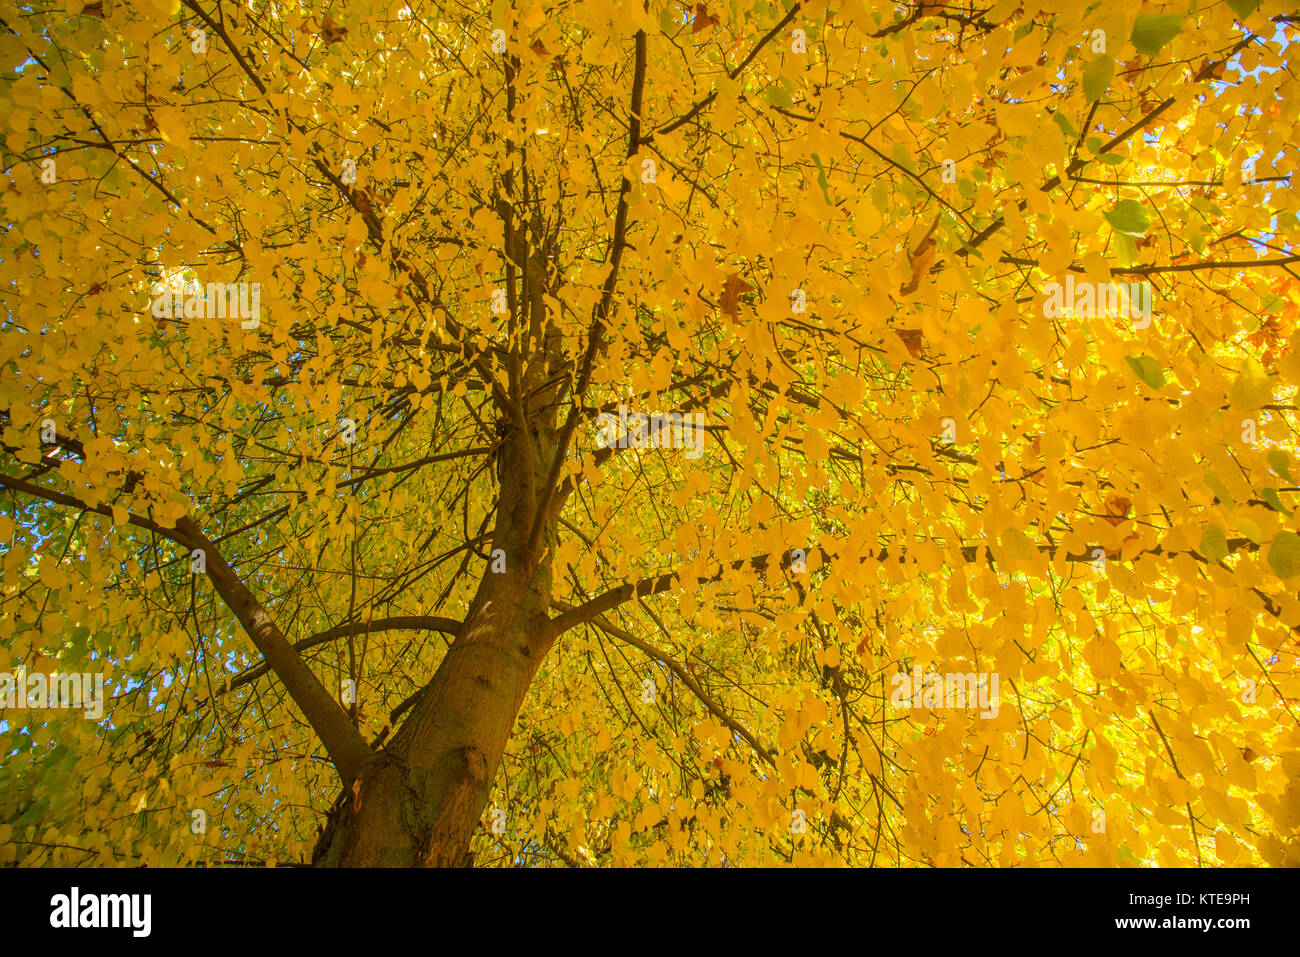 Autumn tree. View from below. - Stock Image